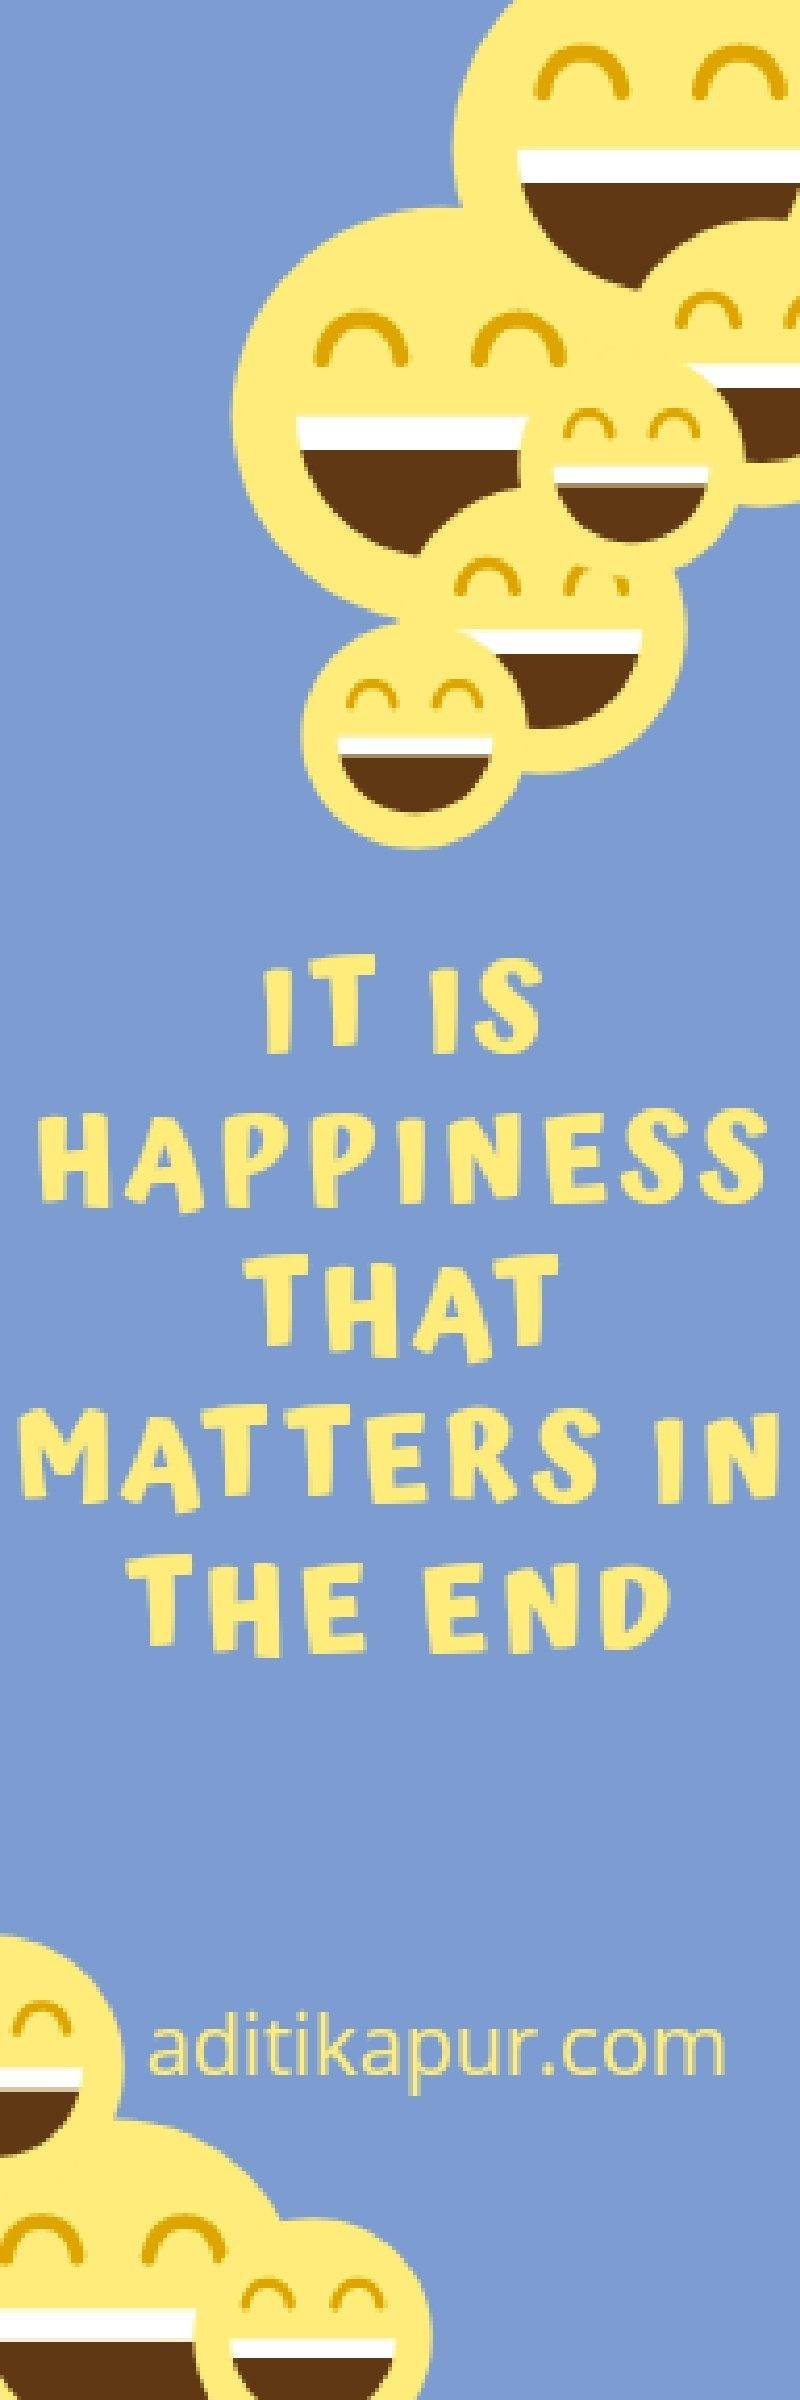 Happiness matters in the end